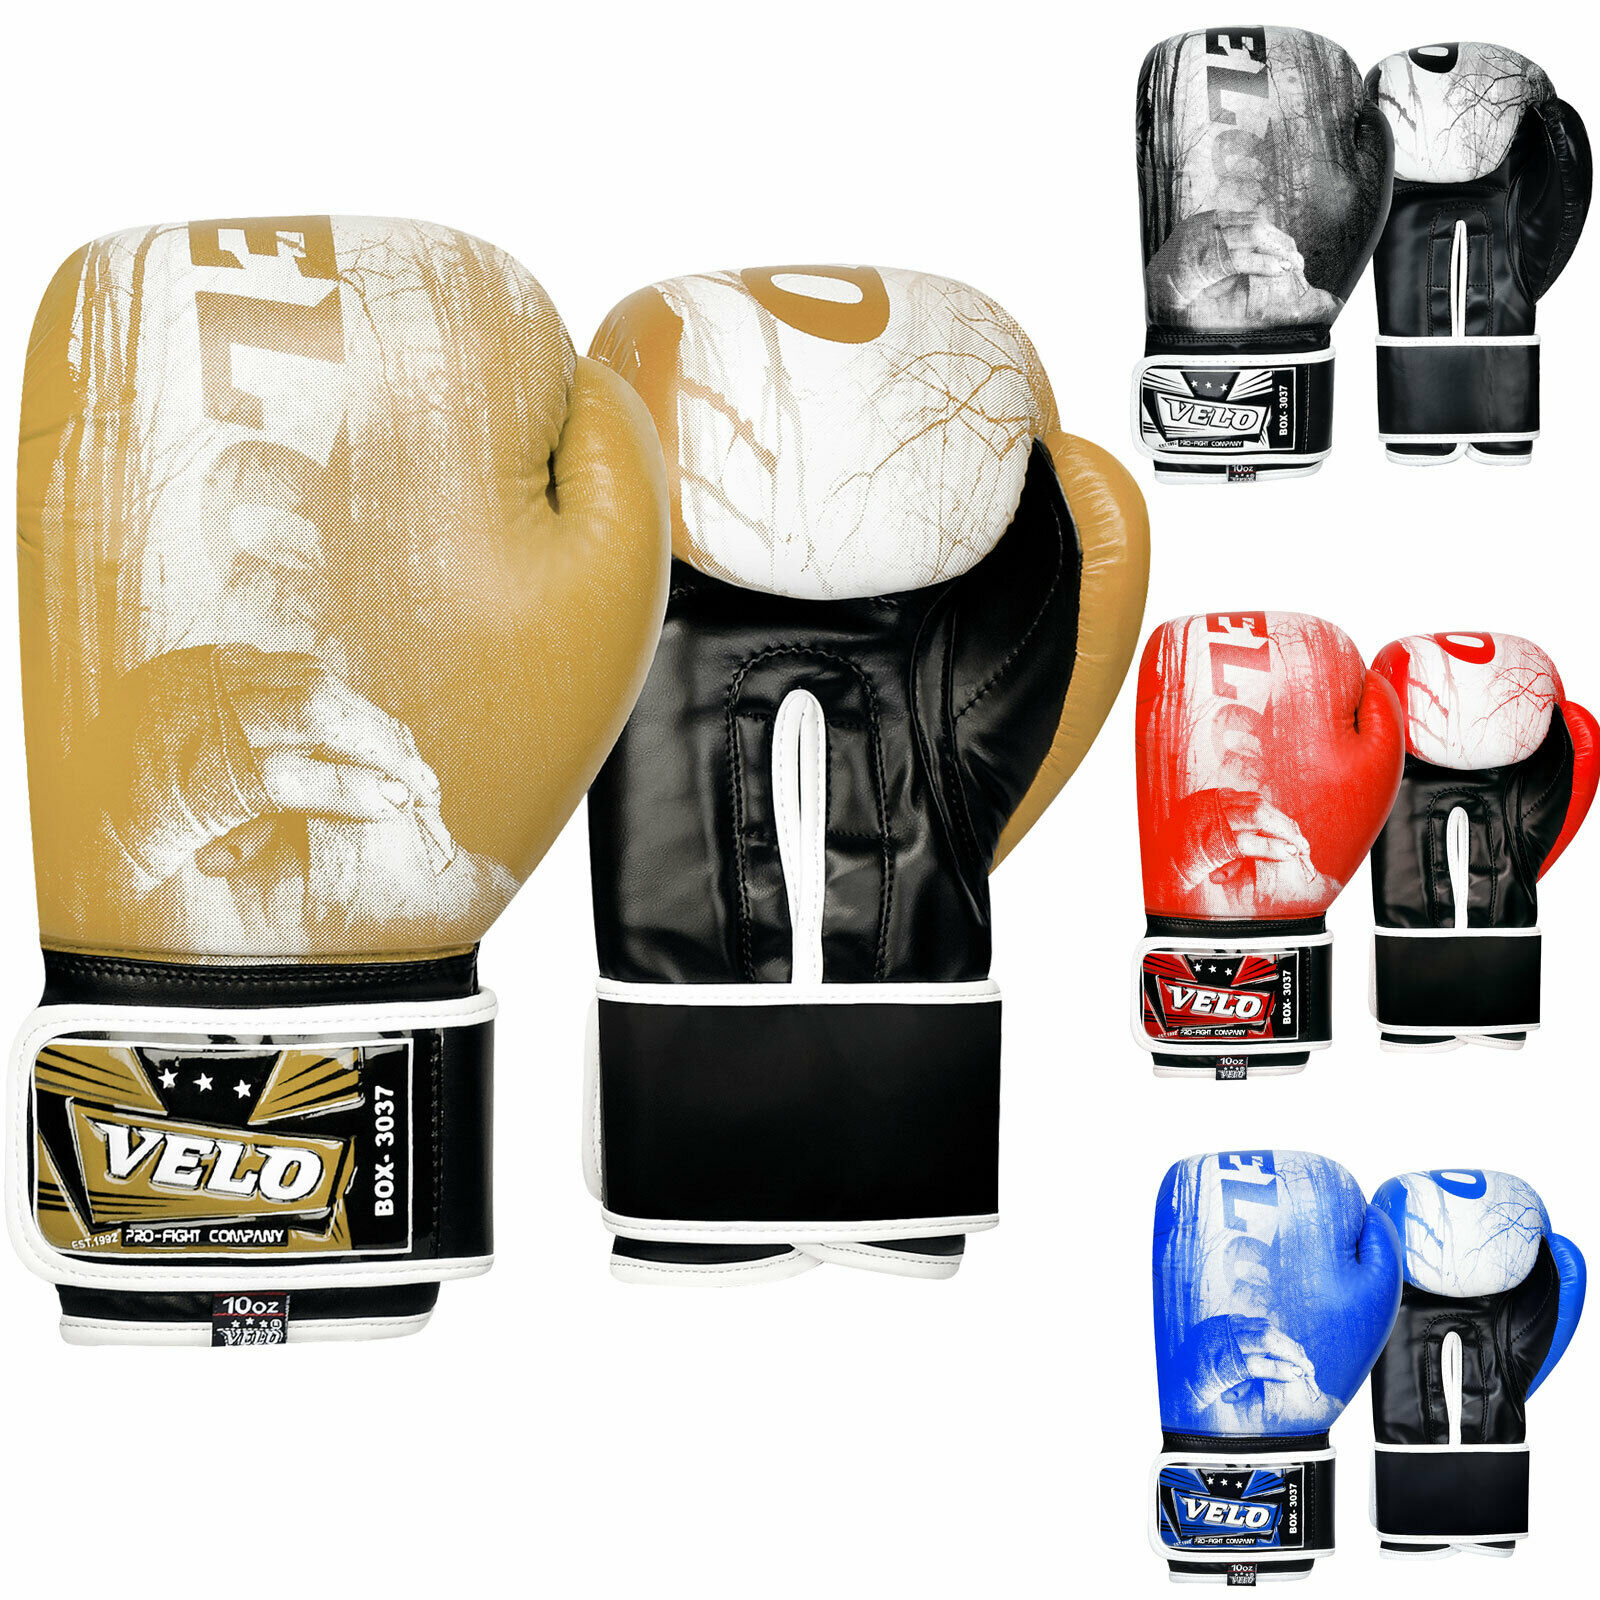 VELO Boxing Gloves - Gold Black Blue Black